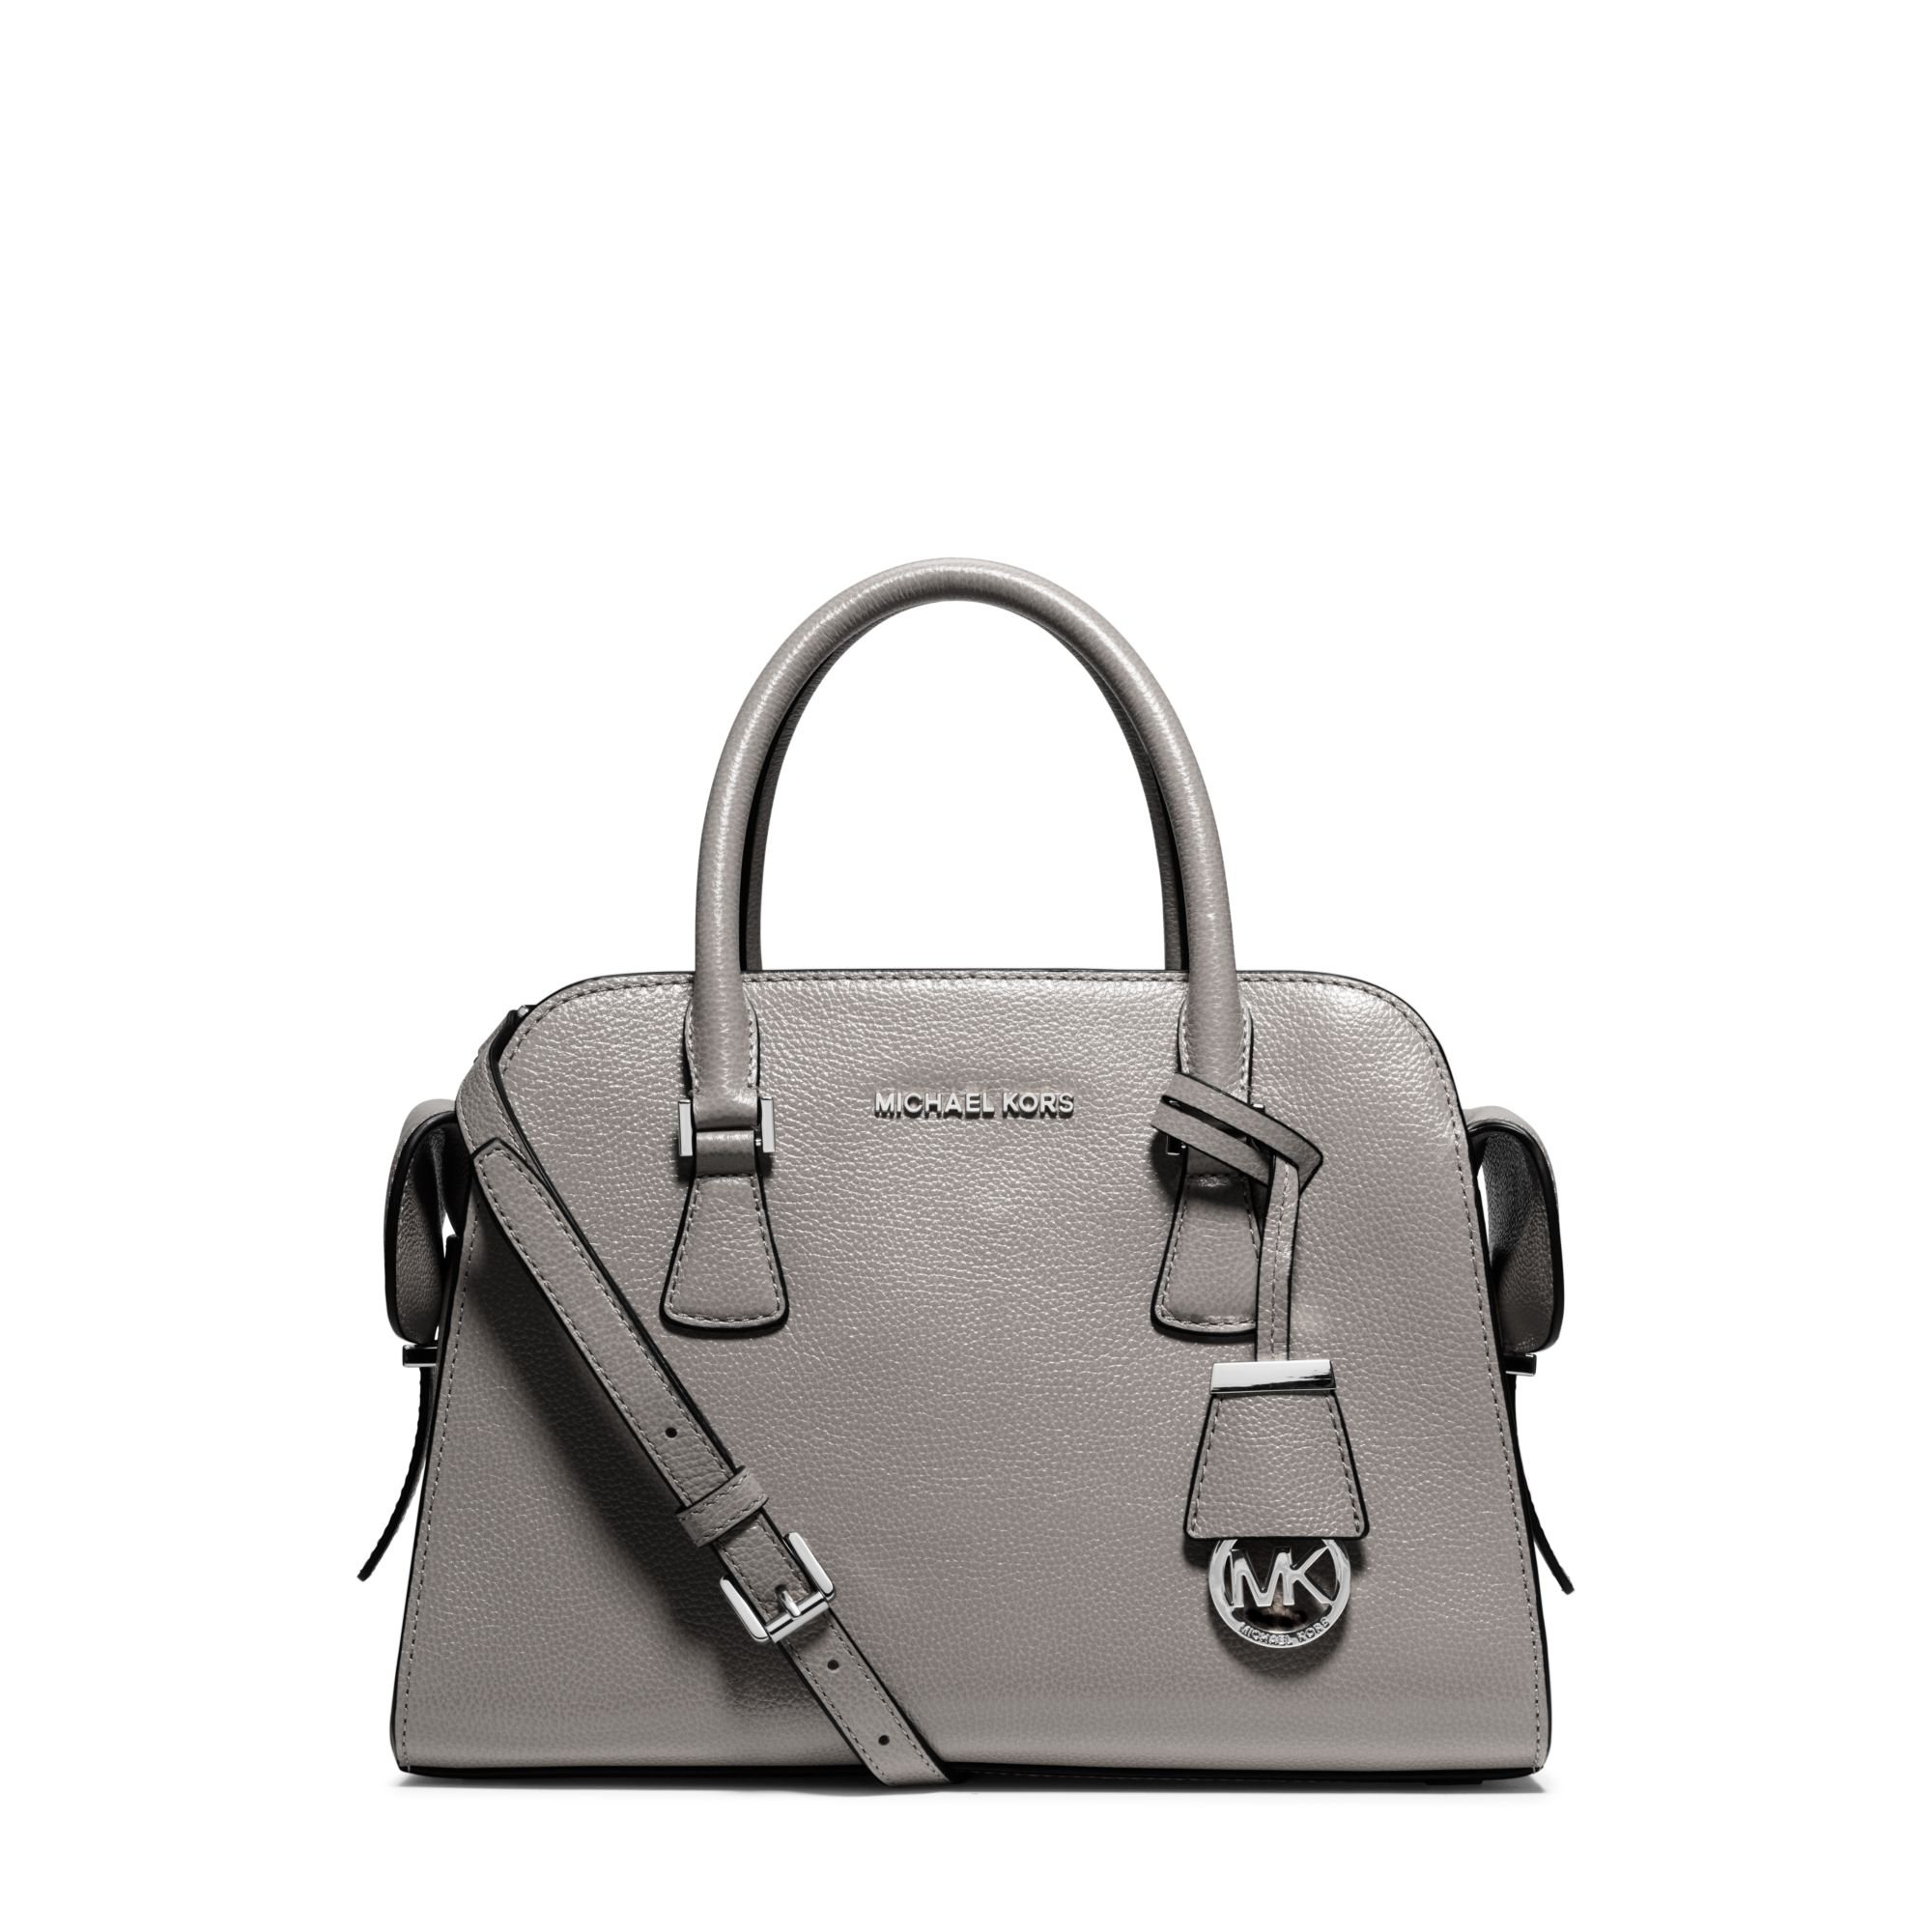 Michael Kors Laukkukoru : Michael kors harper medium leather satchel in gray lyst